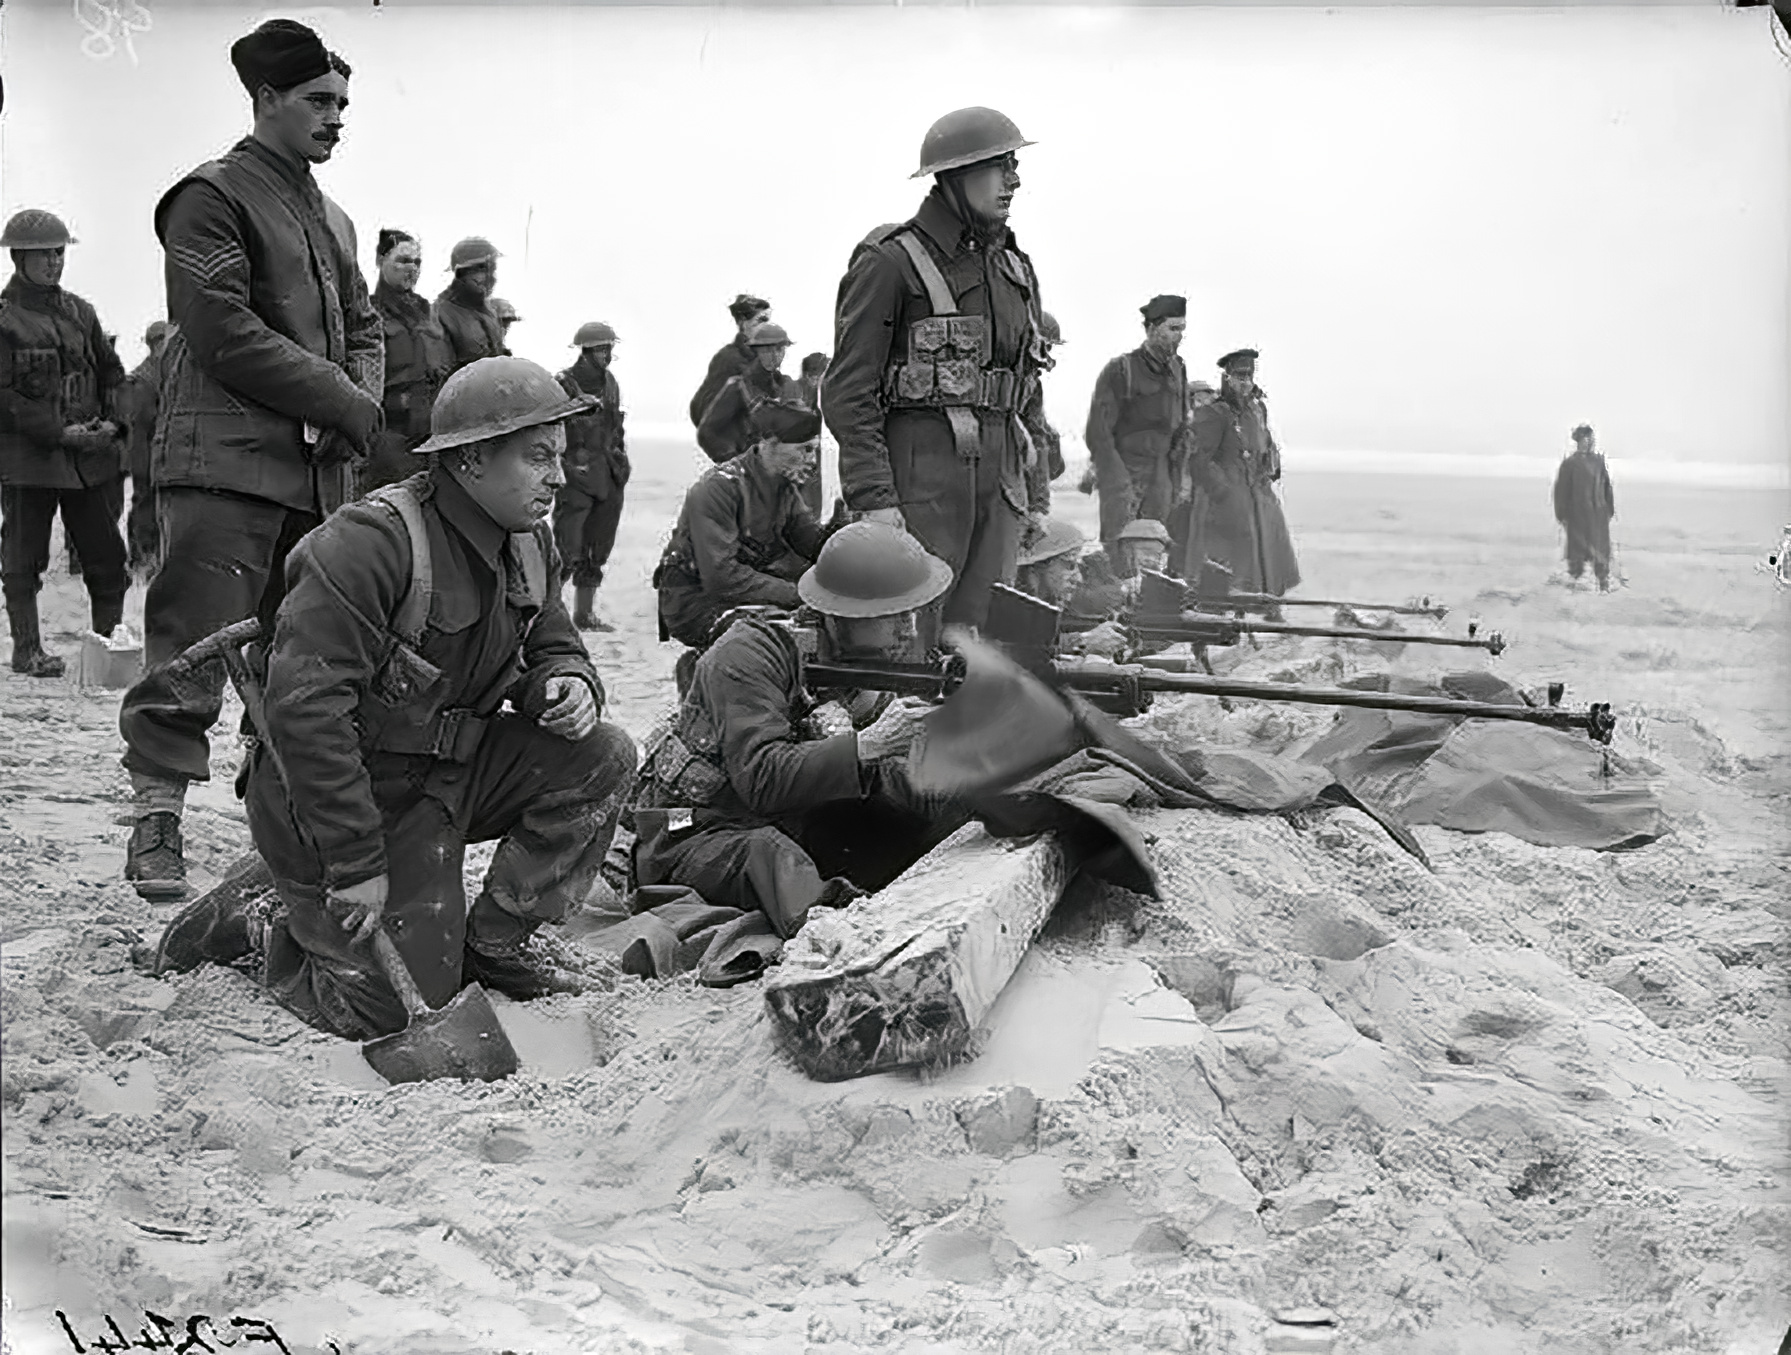 BEF 1st Royal Welch Fusiliers fire Boys anti tank rifles near Etaples Feb 1940 wiki 01